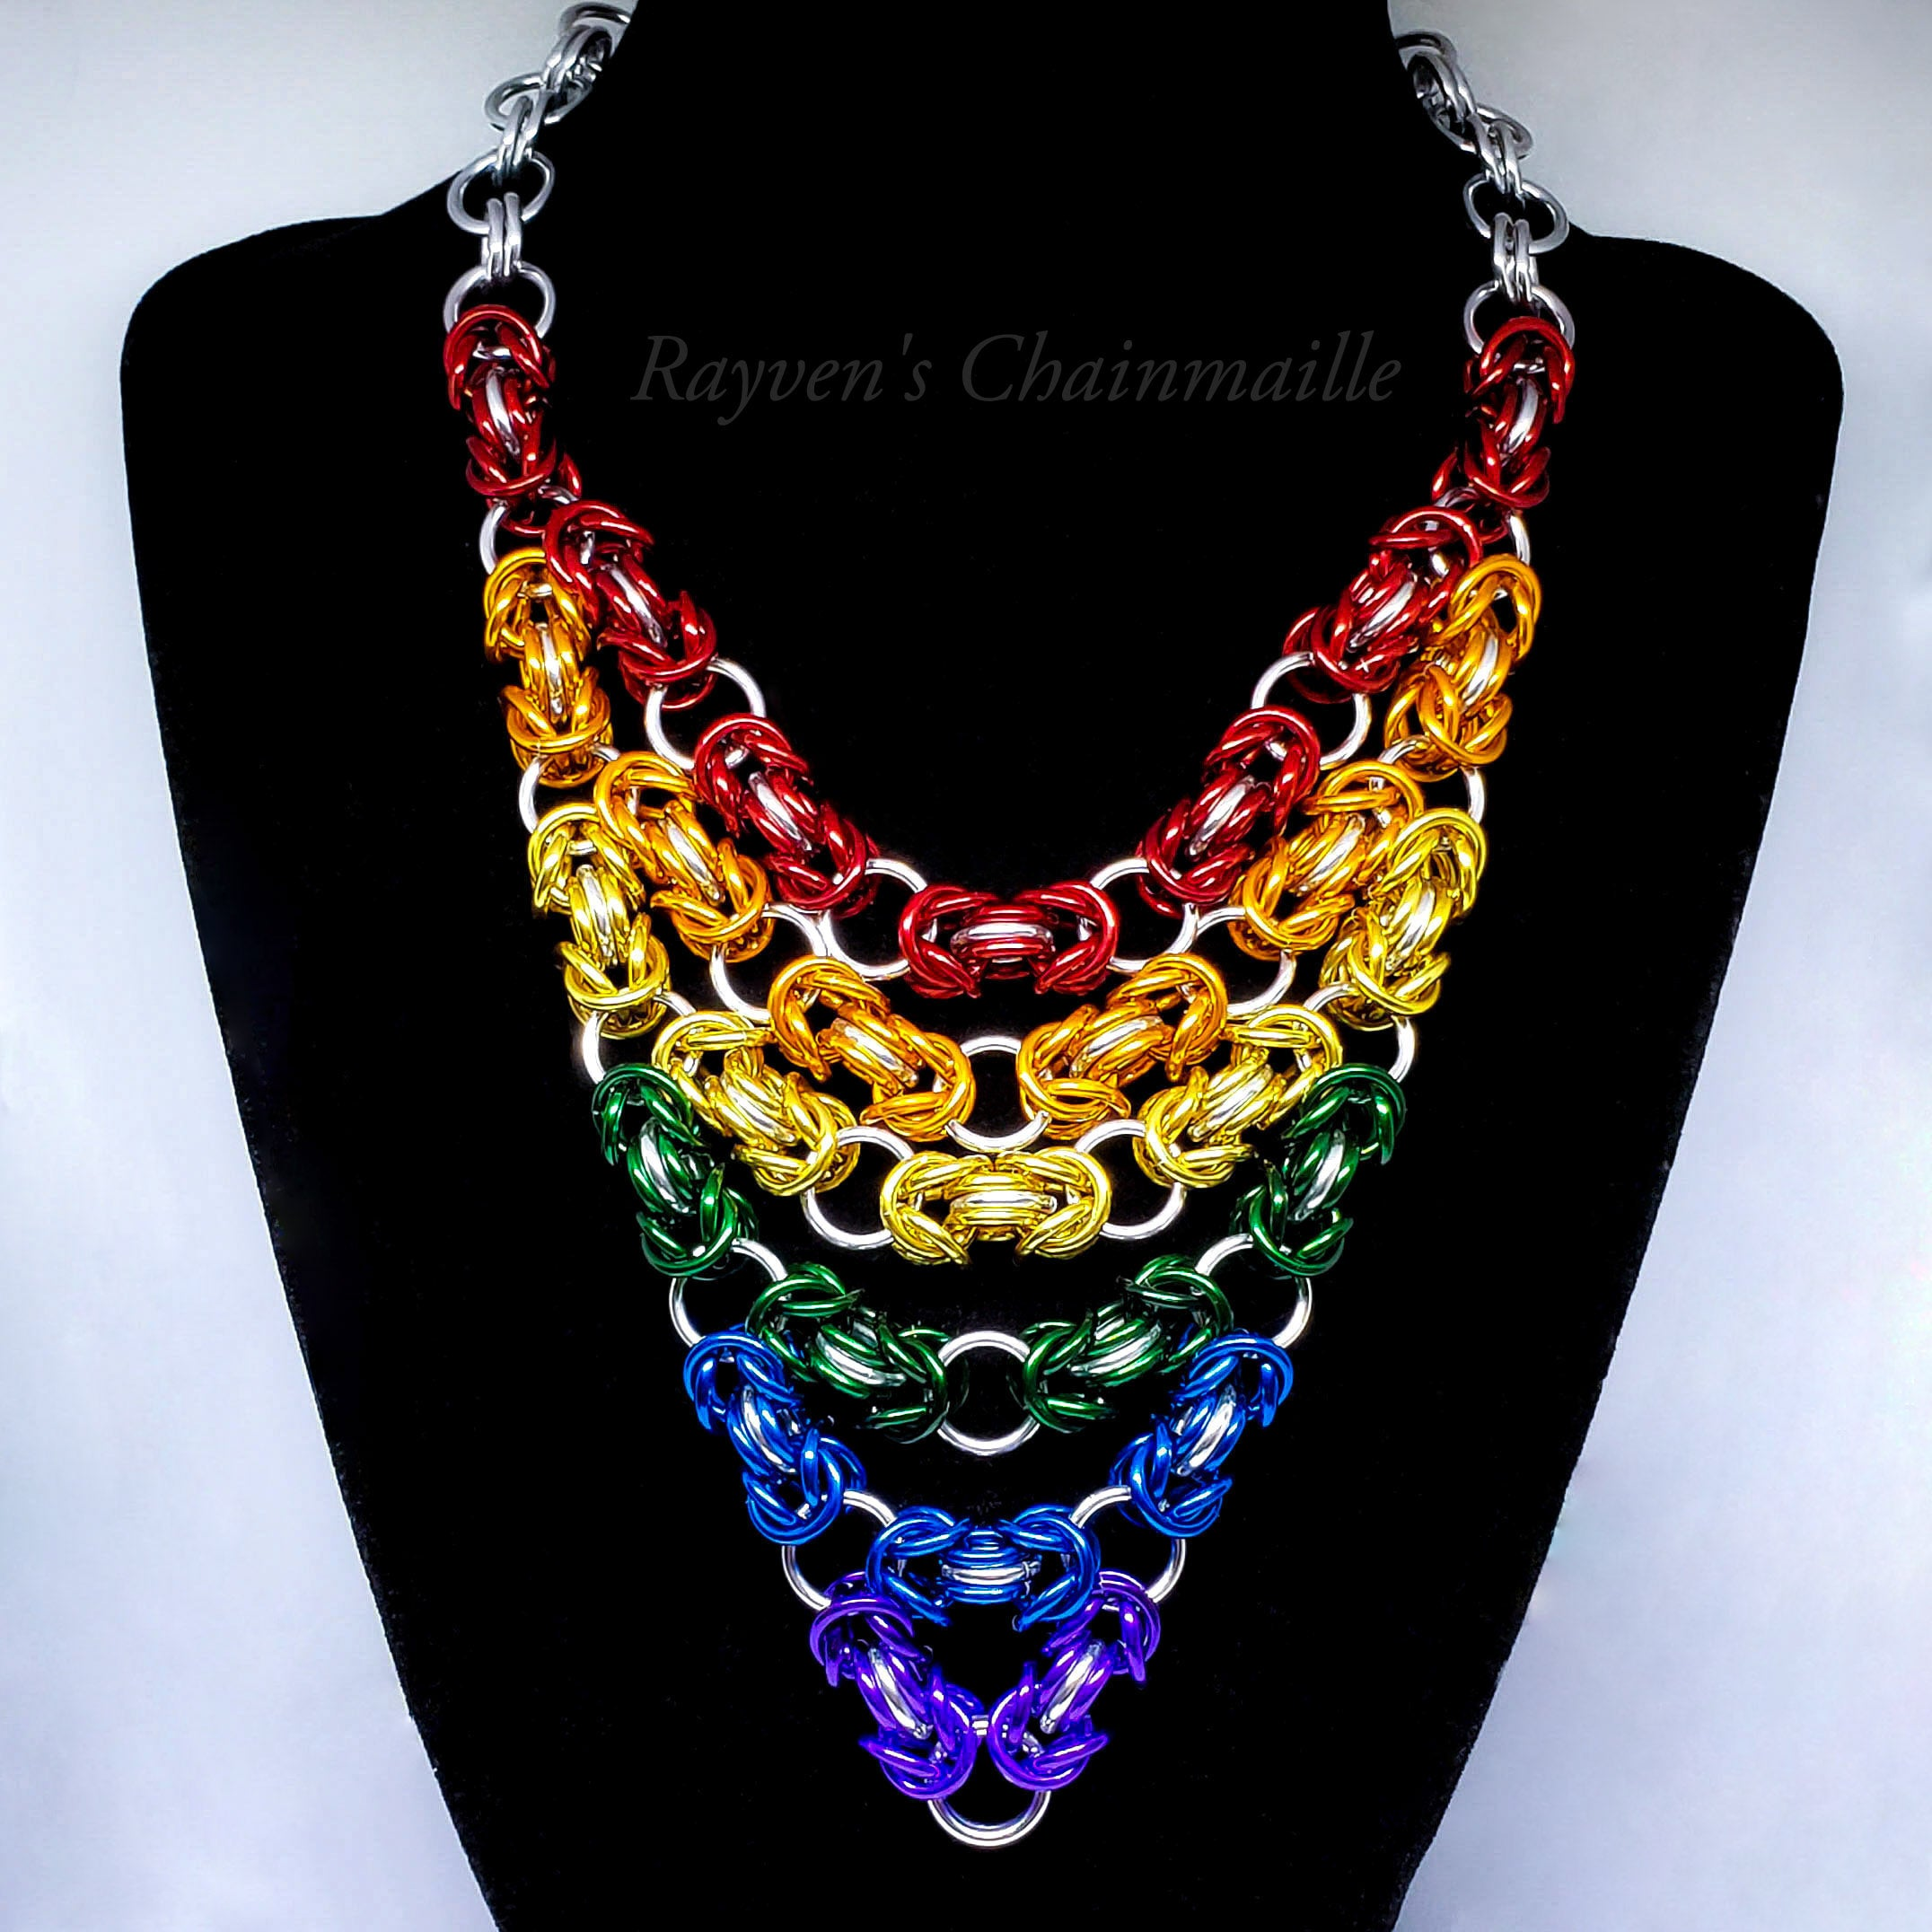 Unlawful Assembly Rainbow Byzantine Chainmail Necklace - Rayven's Chainmaille